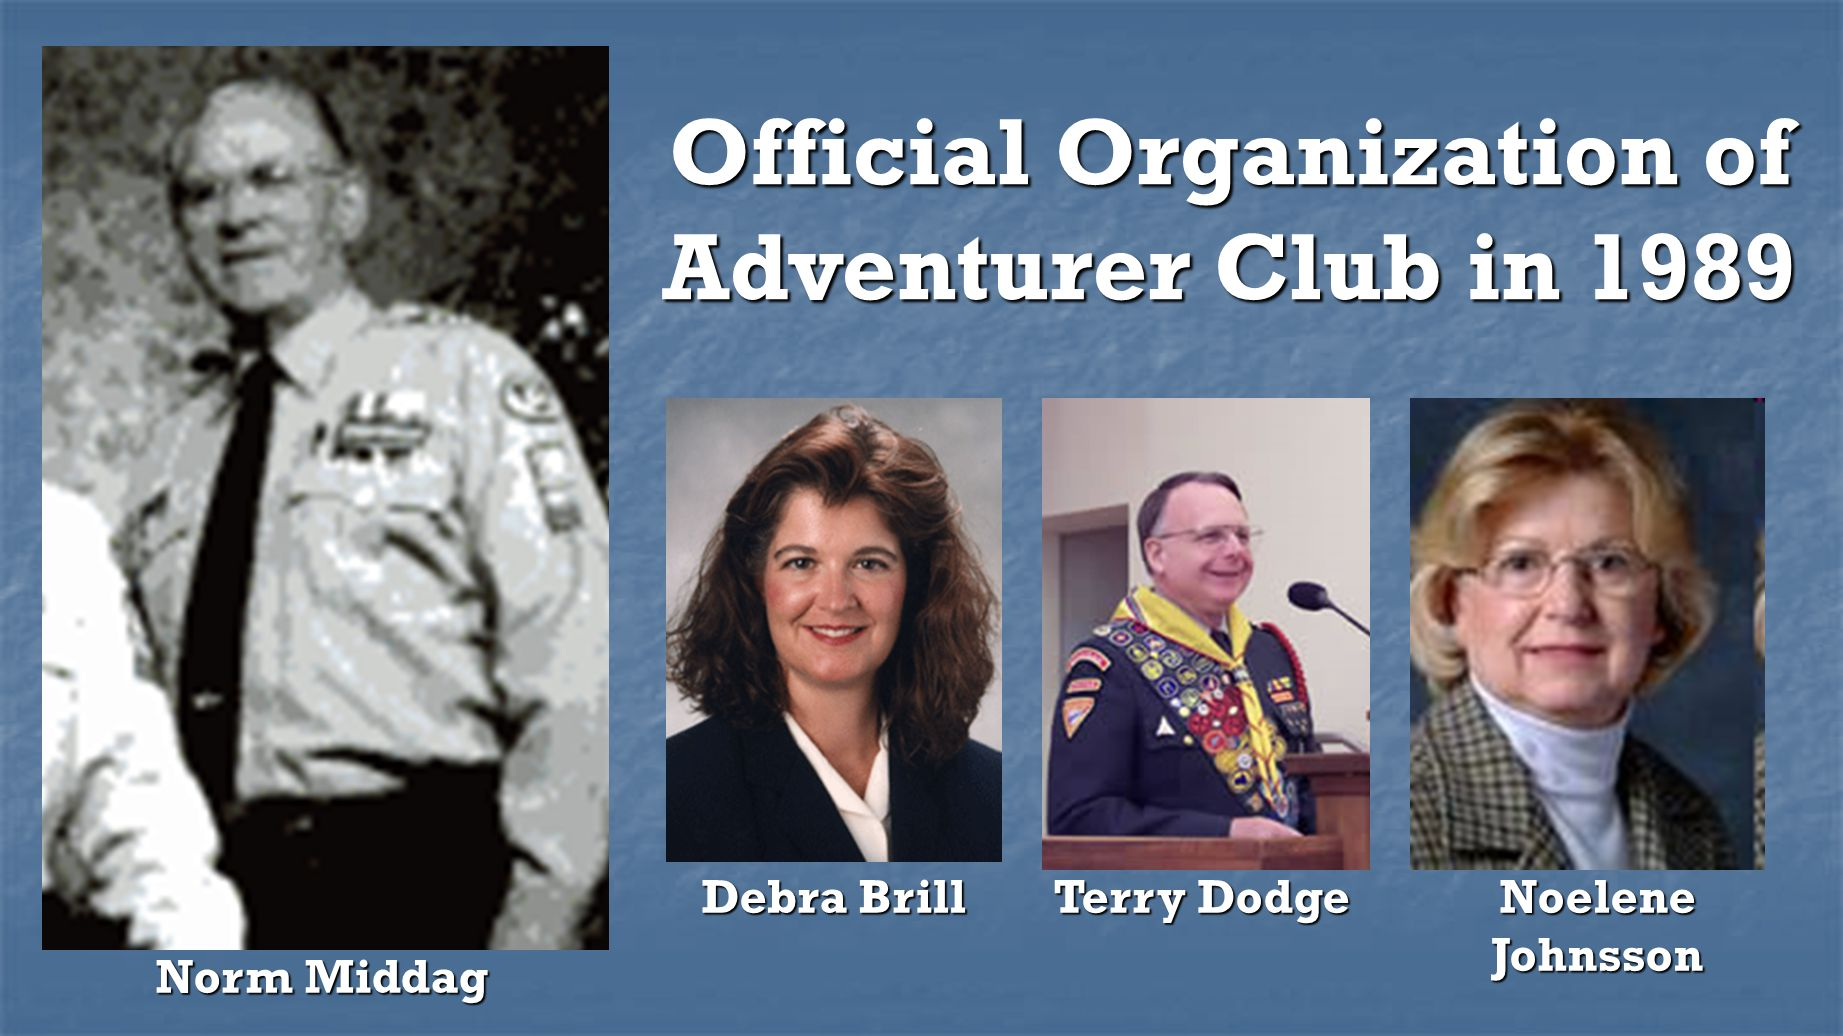 Official Organization of Adventurer Club in 1989